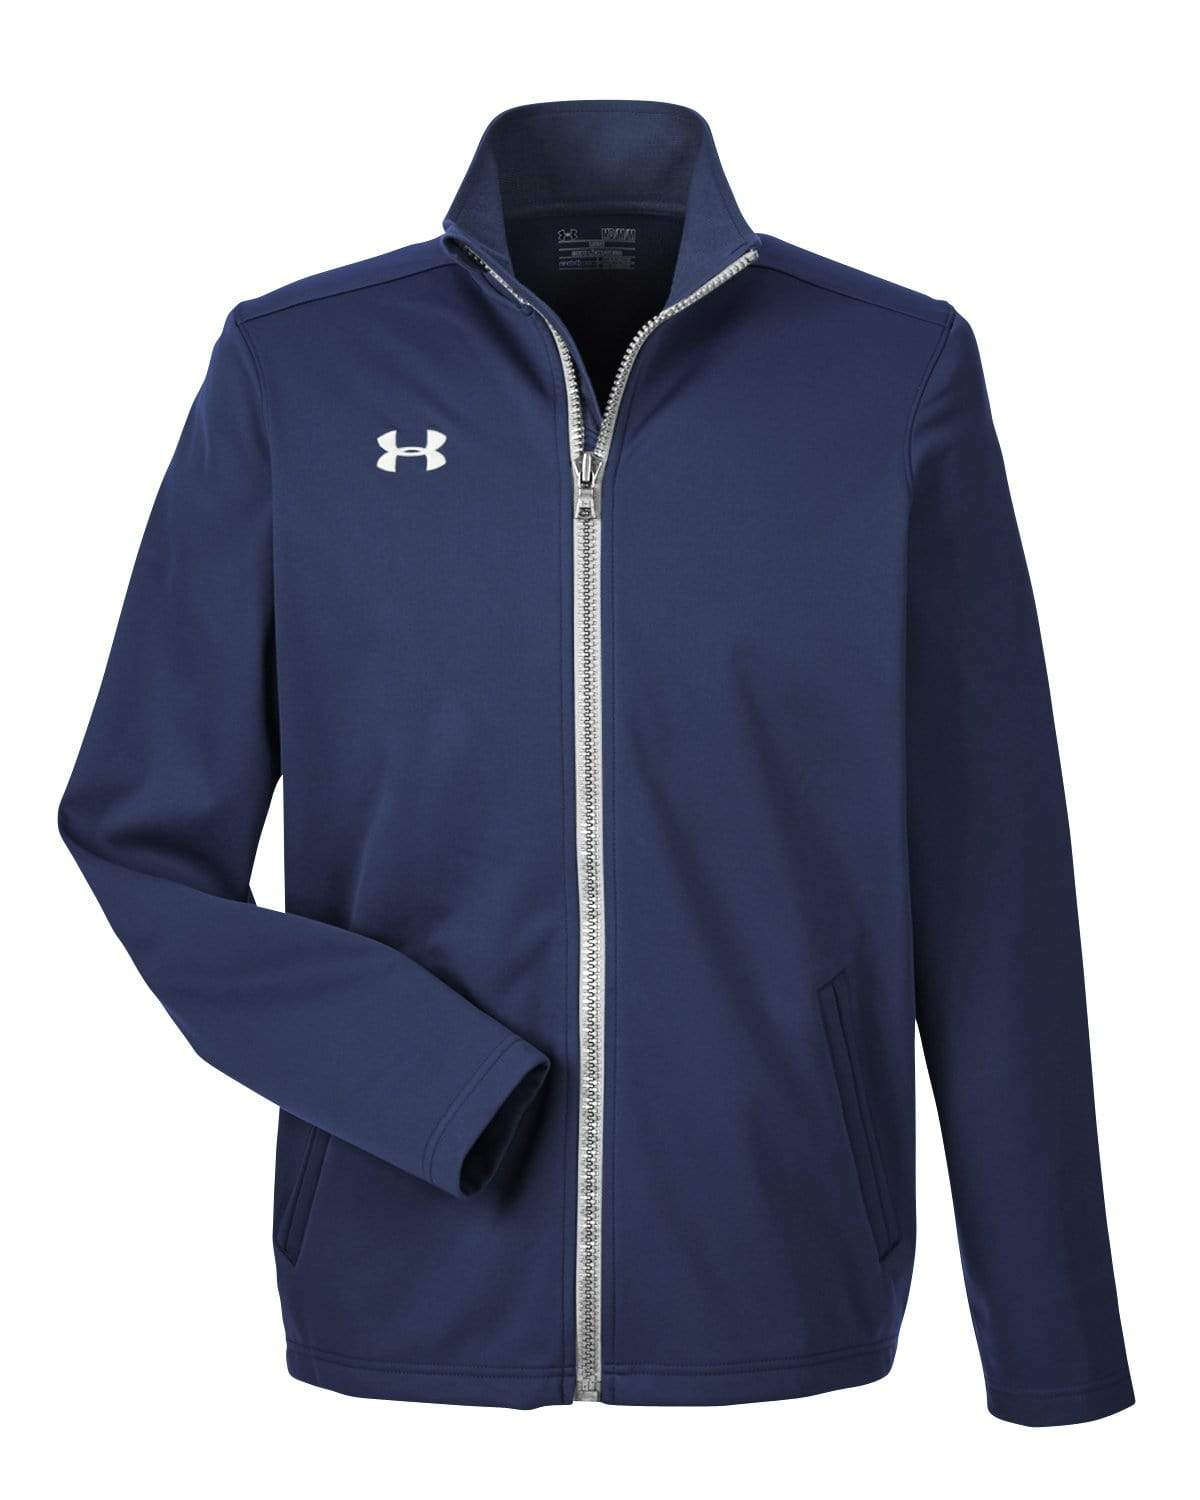 Under Armour Outerwear S / Midnight Navy Under Armour - Men's Ultimate Team Jacket